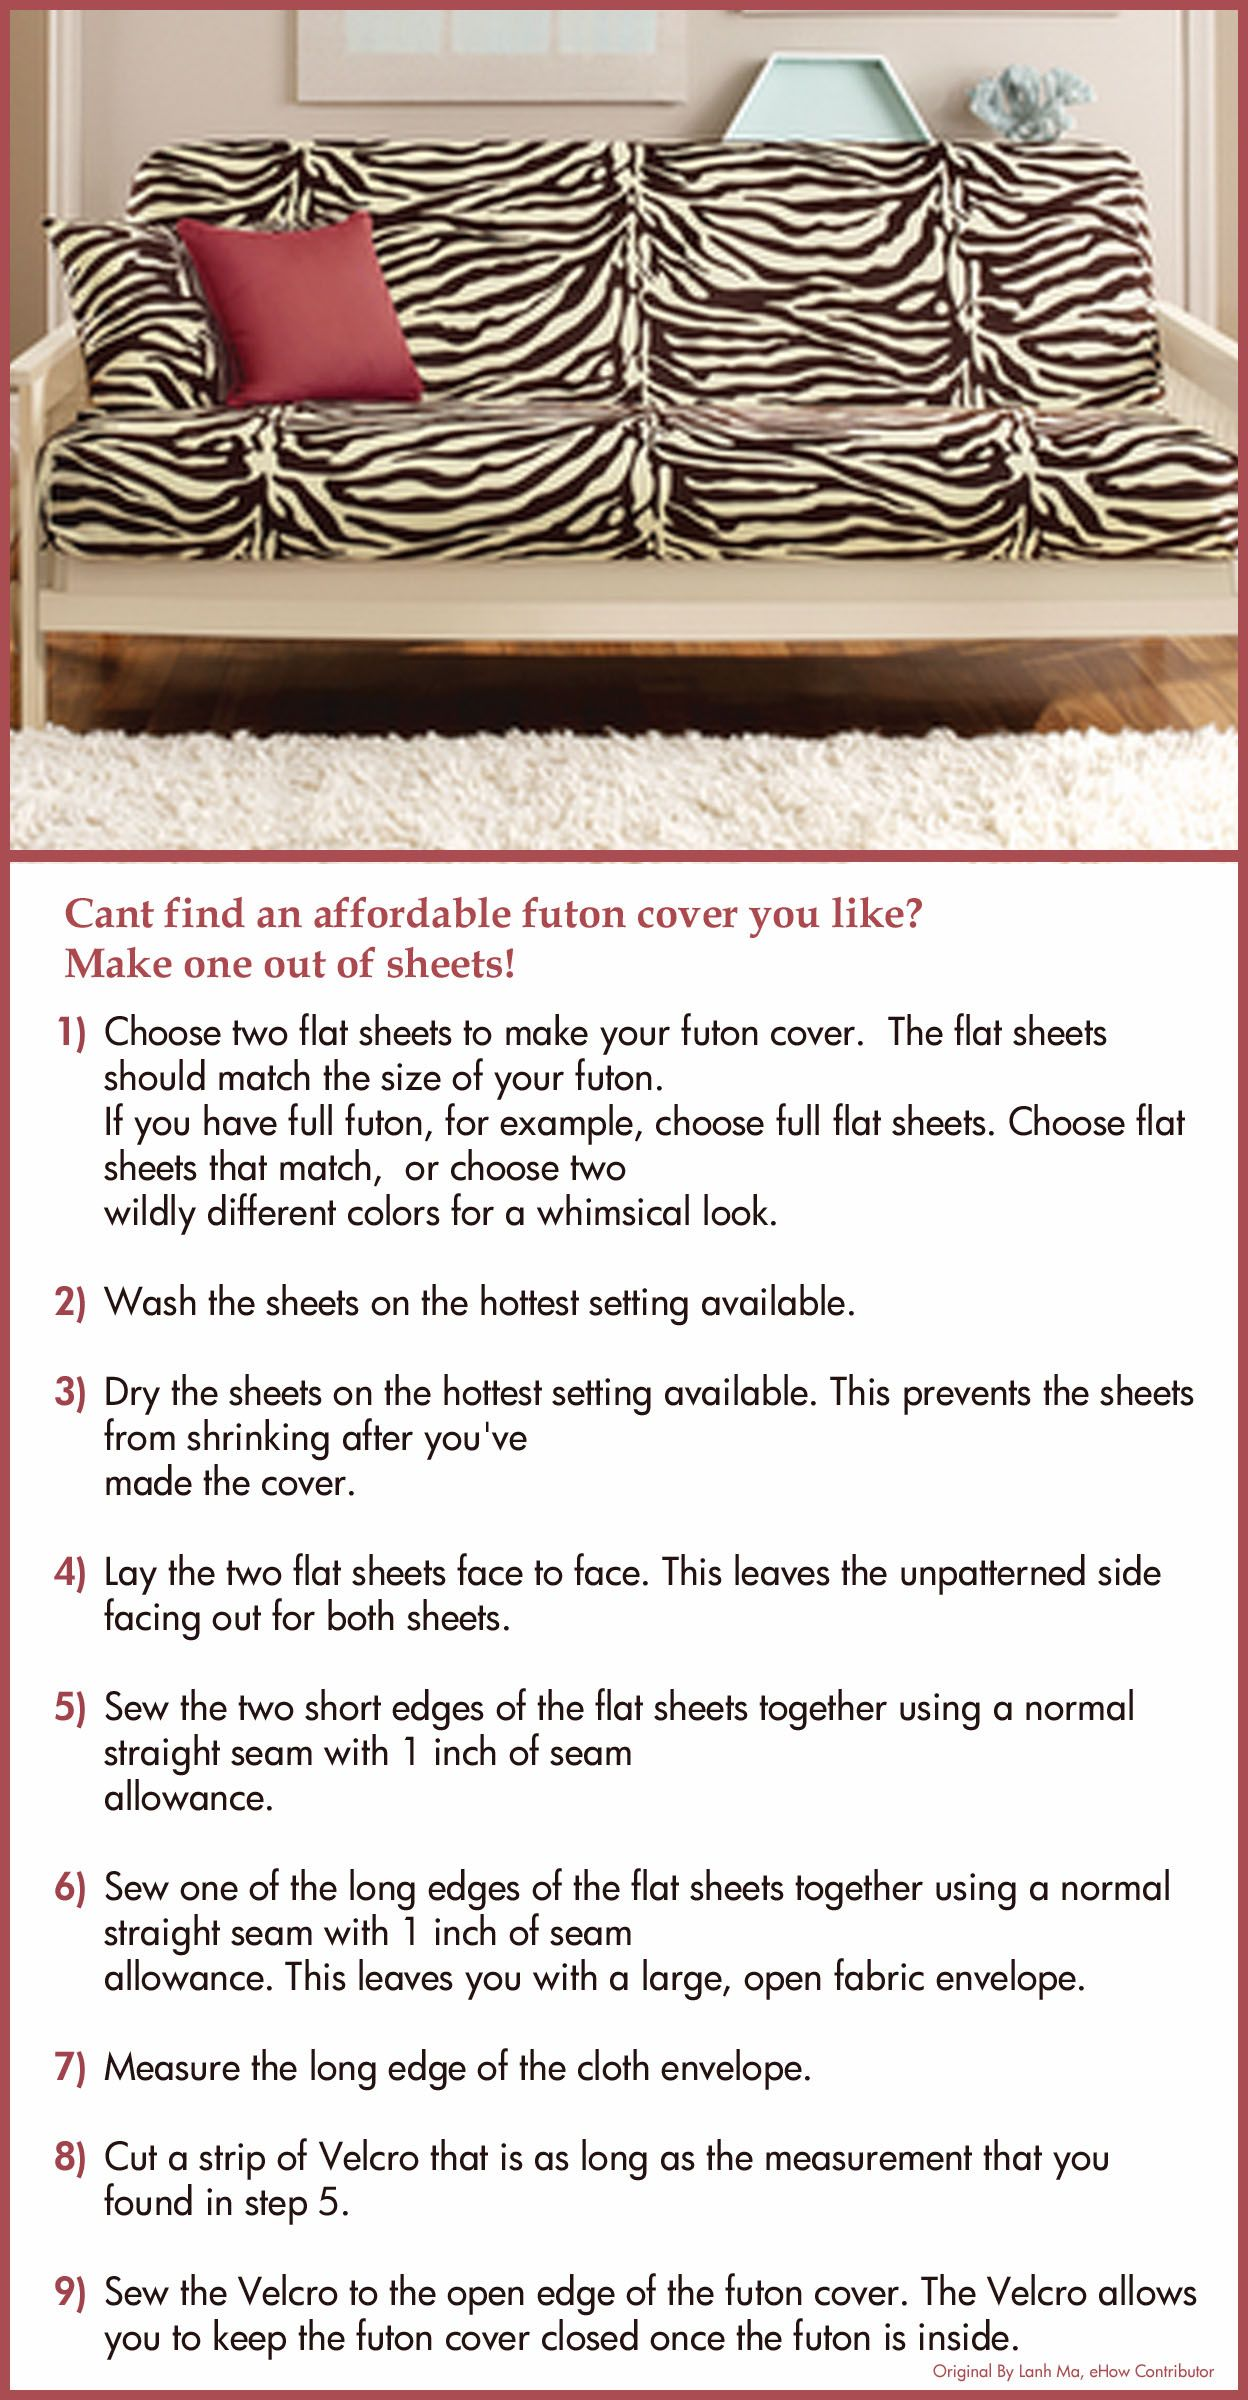 Make Your Own Futon Cover Saw This Idea On Ehow And Thought I Would Share With